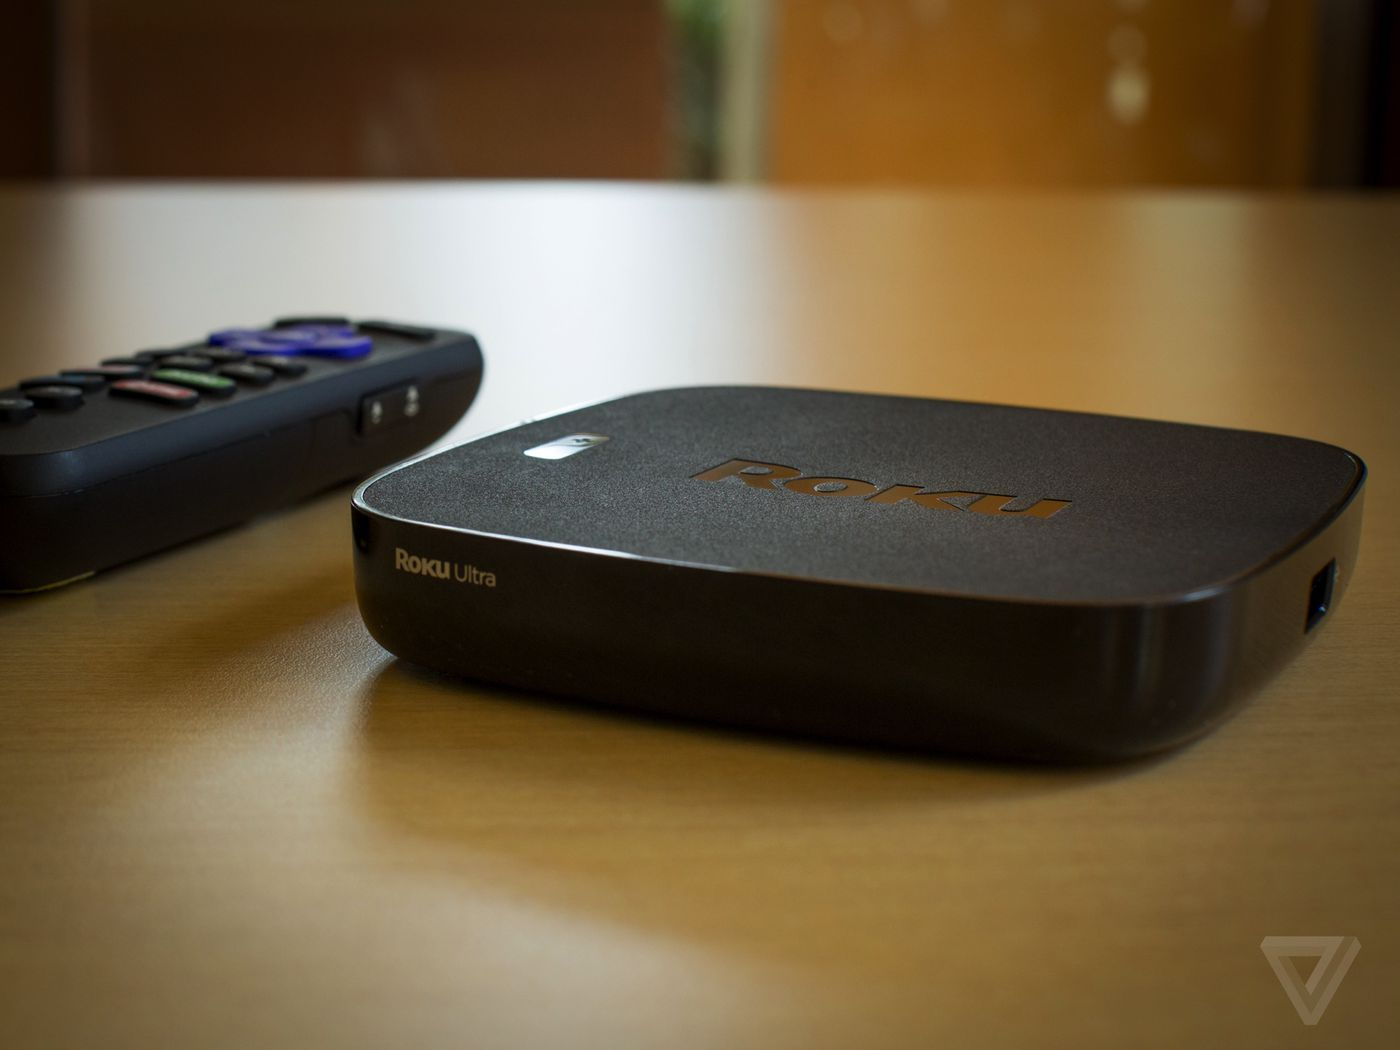 Roku's new streaming media players support 4K and HDR video